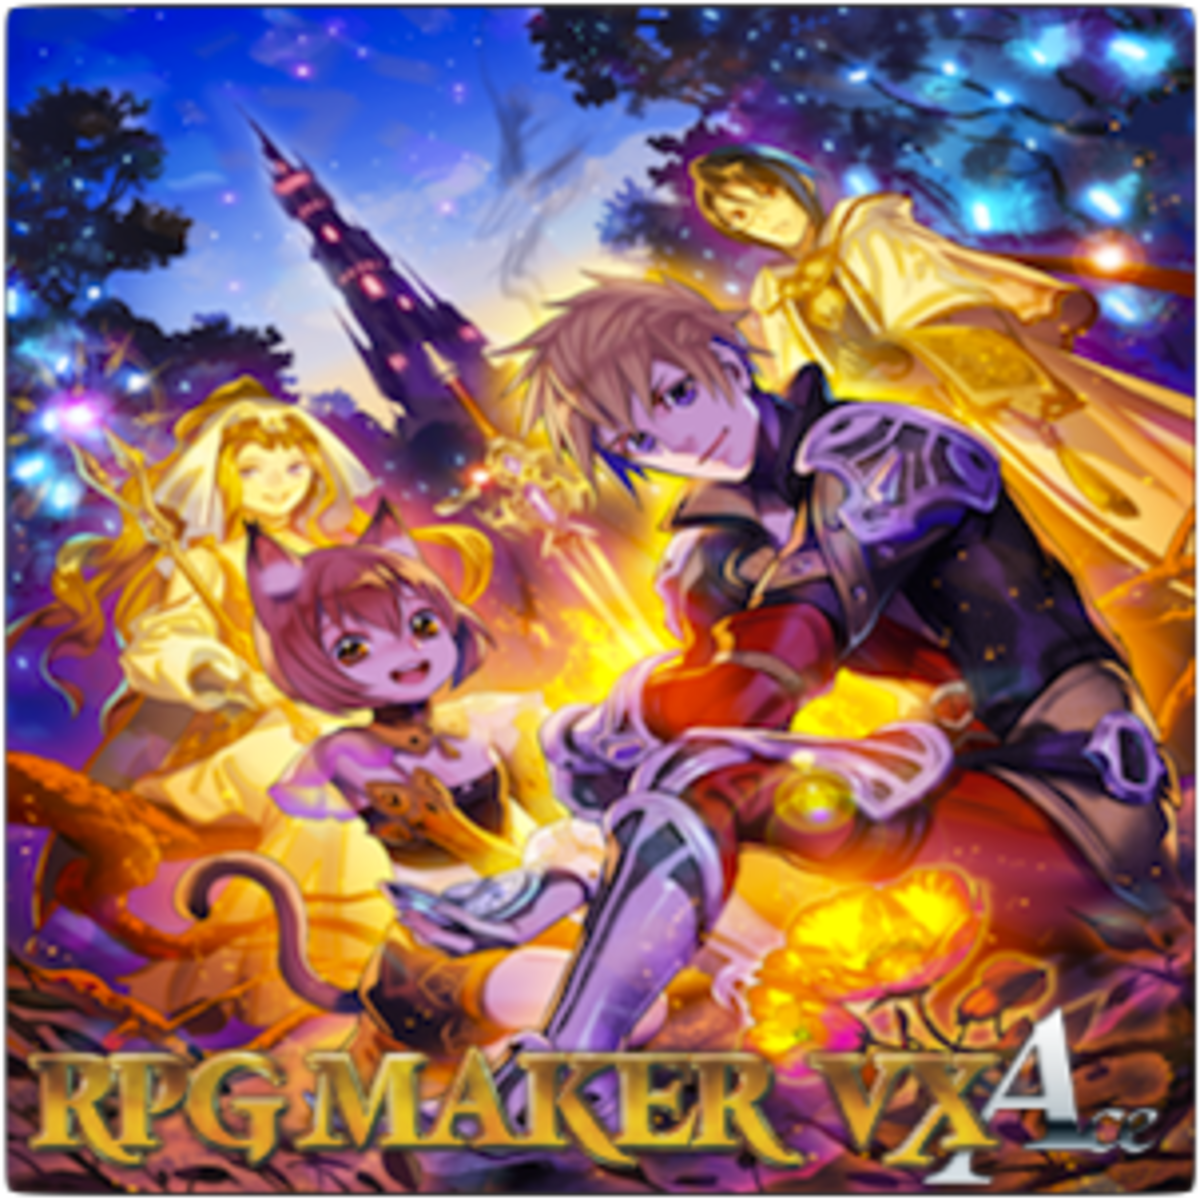 """The cover art for the box copy of """"RPG Maker VX Ace."""""""